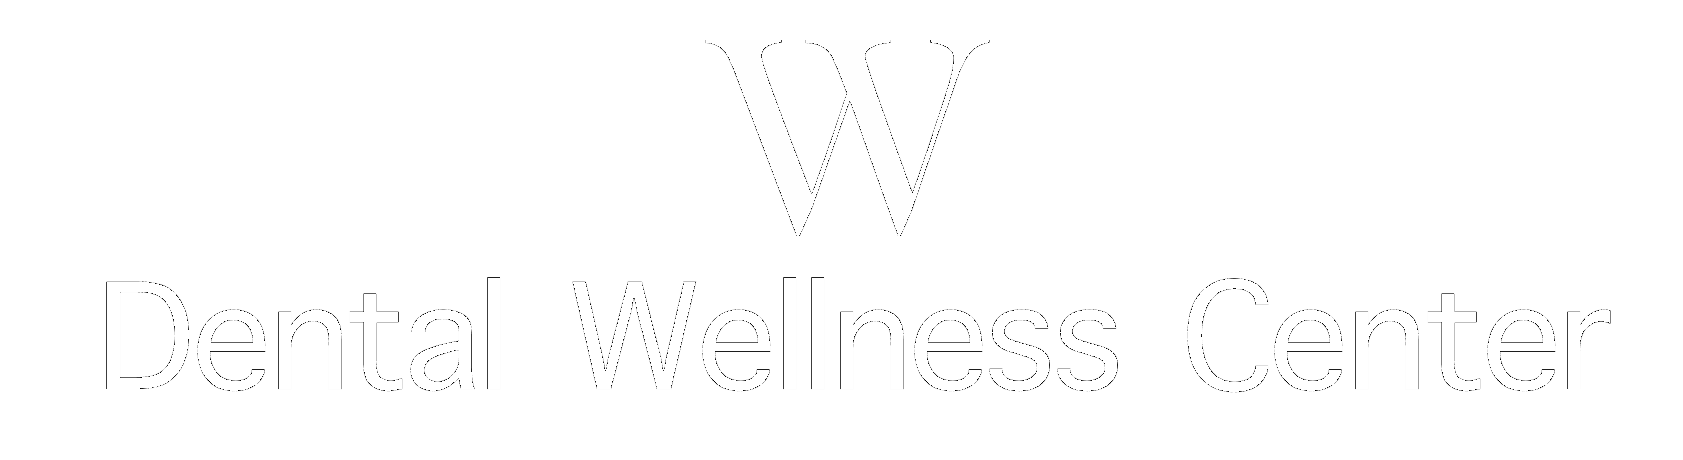 Dental Wellness Center of Florida Logo